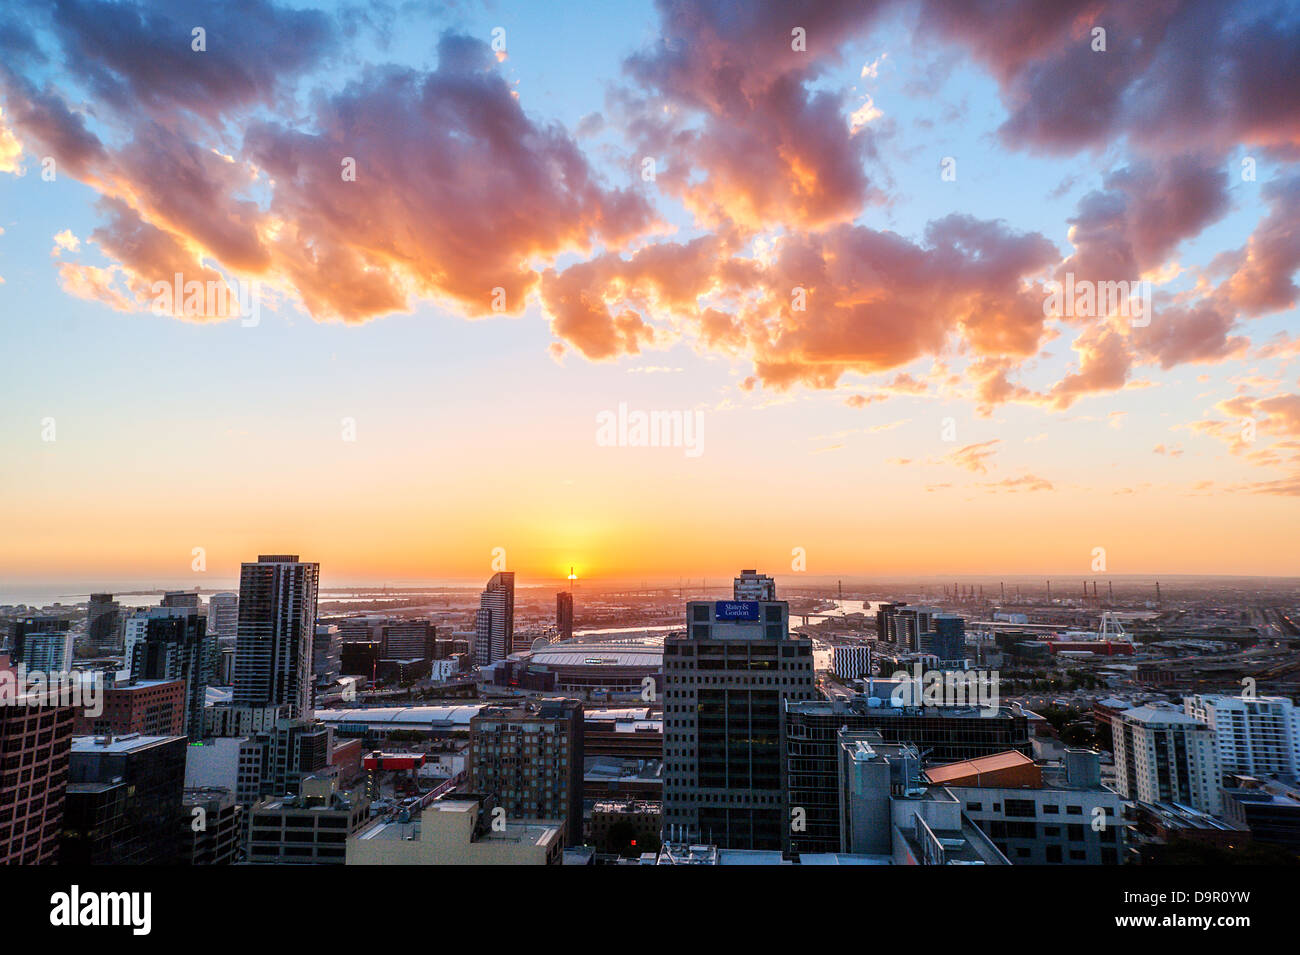 A burning sunset ends a hot day in Melbourne, the capital of the Australian state of Victoria. - Stock Image